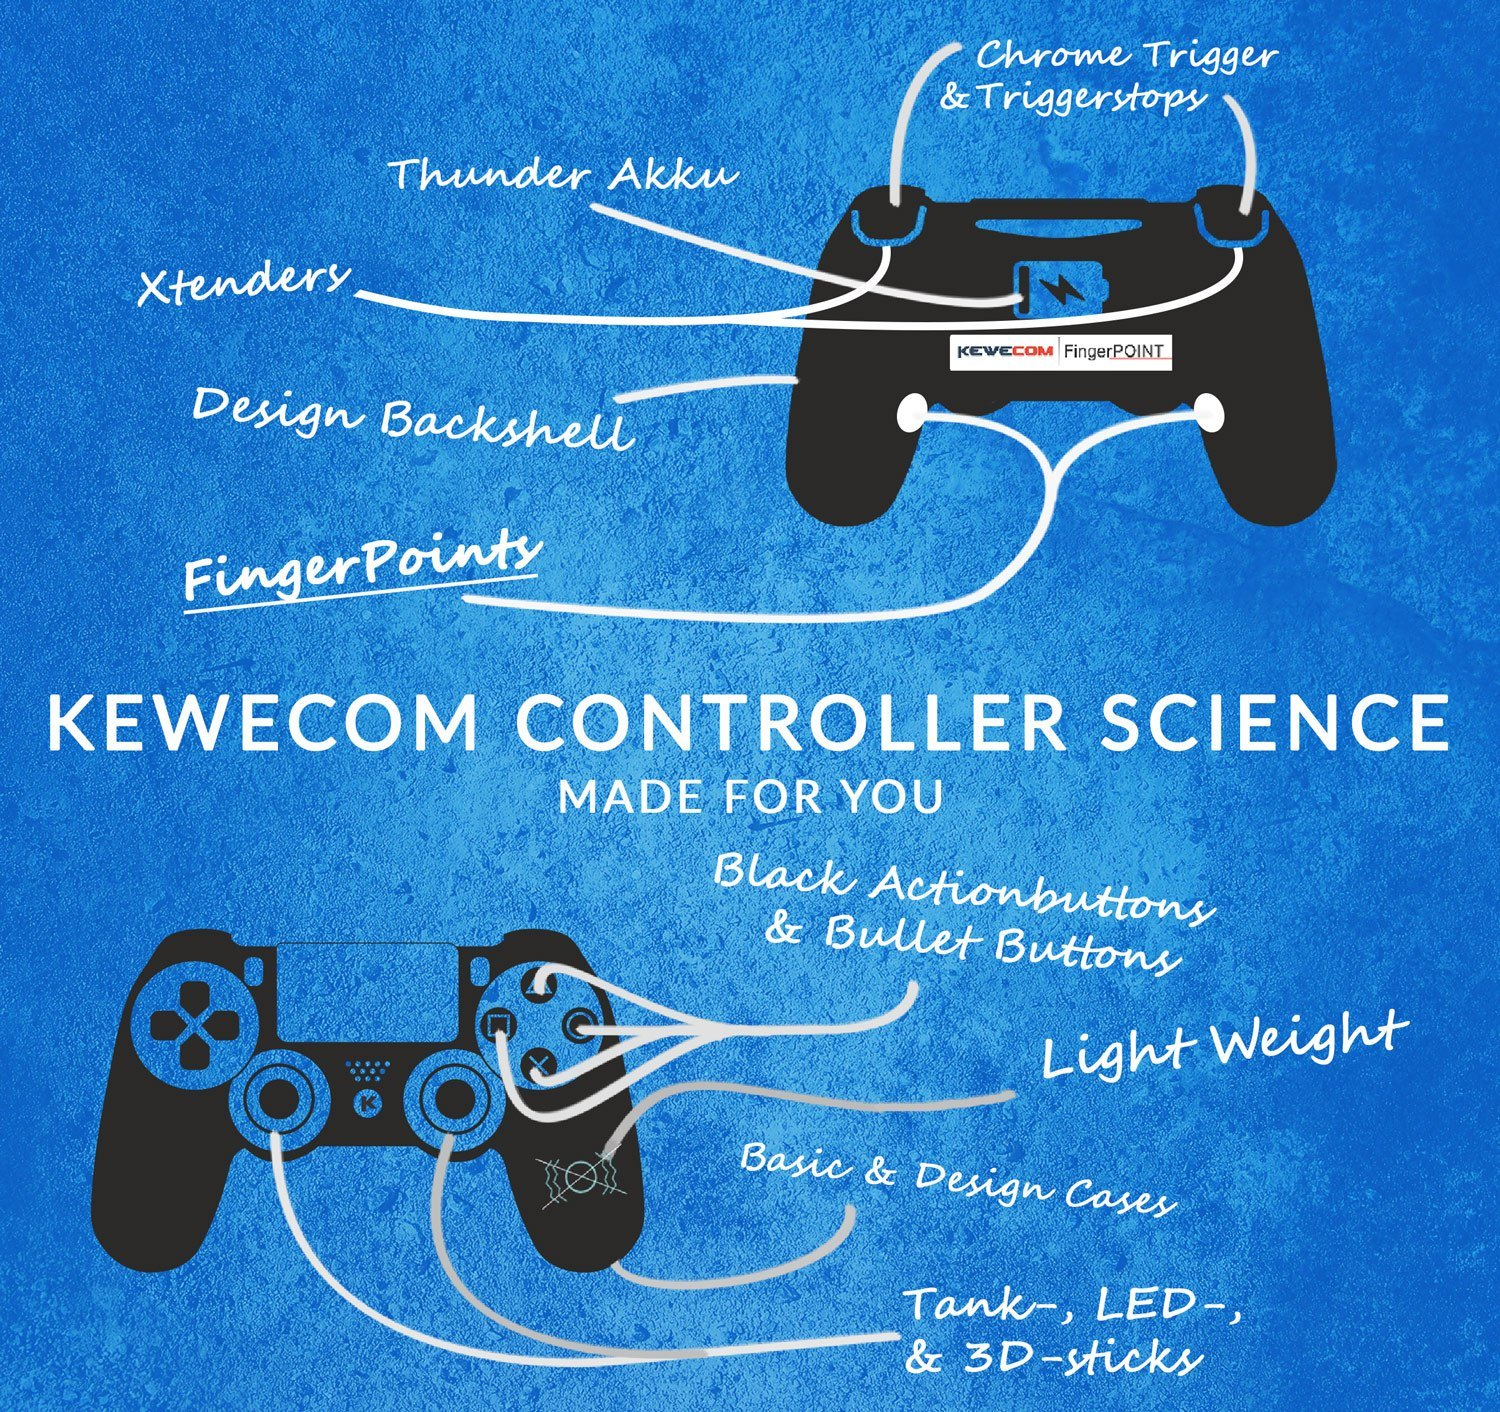 Kewecom Controller Science FingerPoint PS4 Scuf Controller Gamepad Paddles Triggerstops